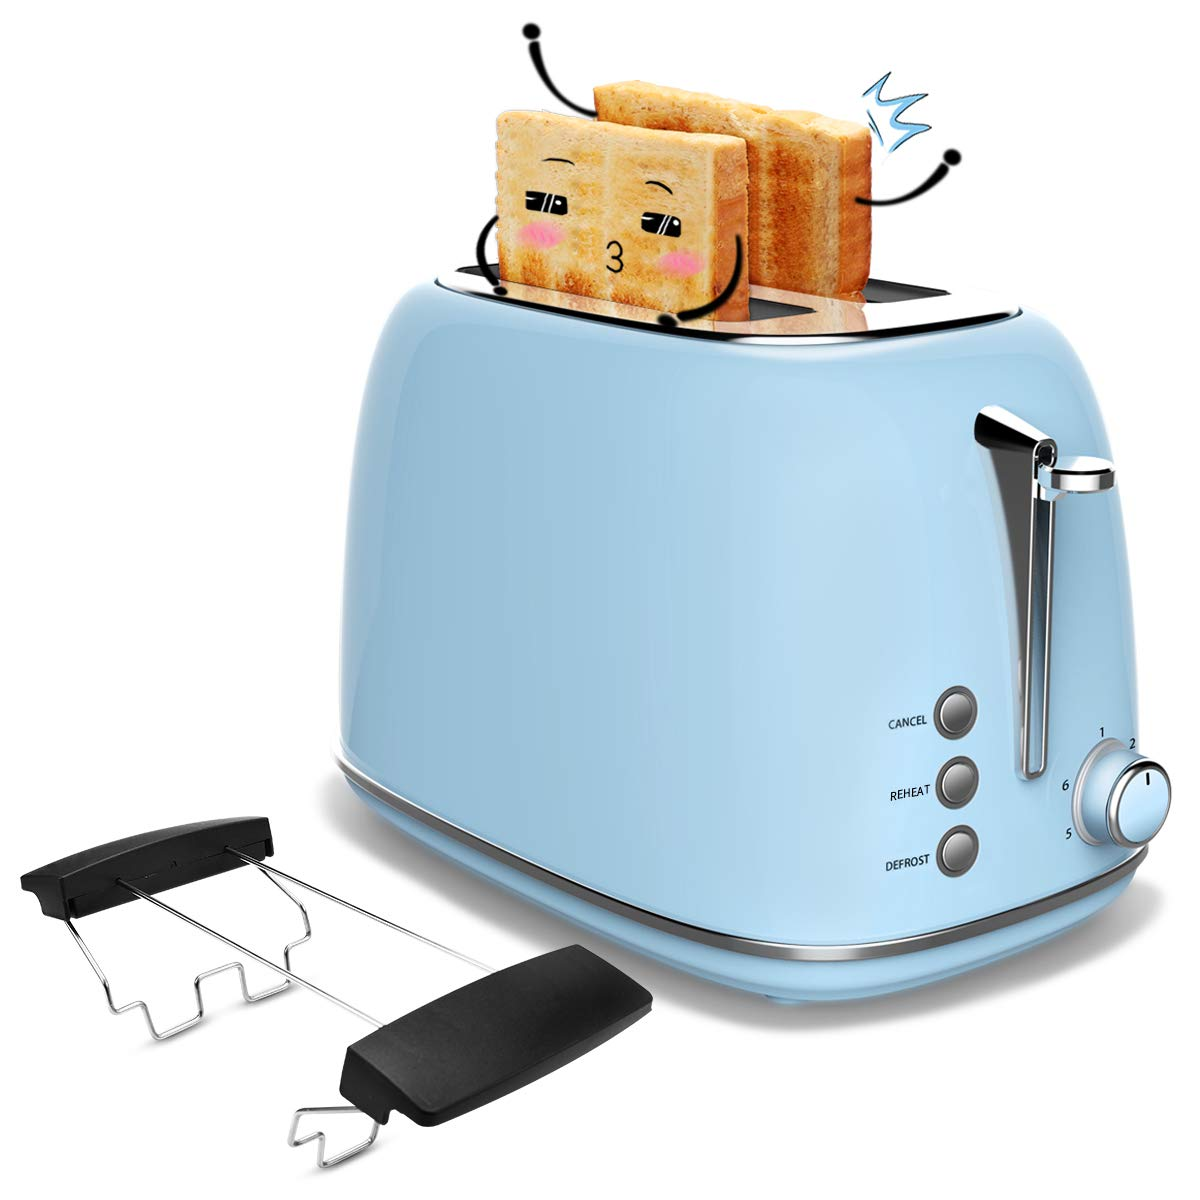 Toaster 2 Slice, Stainless Steel Toasters with Cancel, Defrost Function, Extra Wide Slot Compact Stainless Steel Toasters for Bread Waffles, Blue